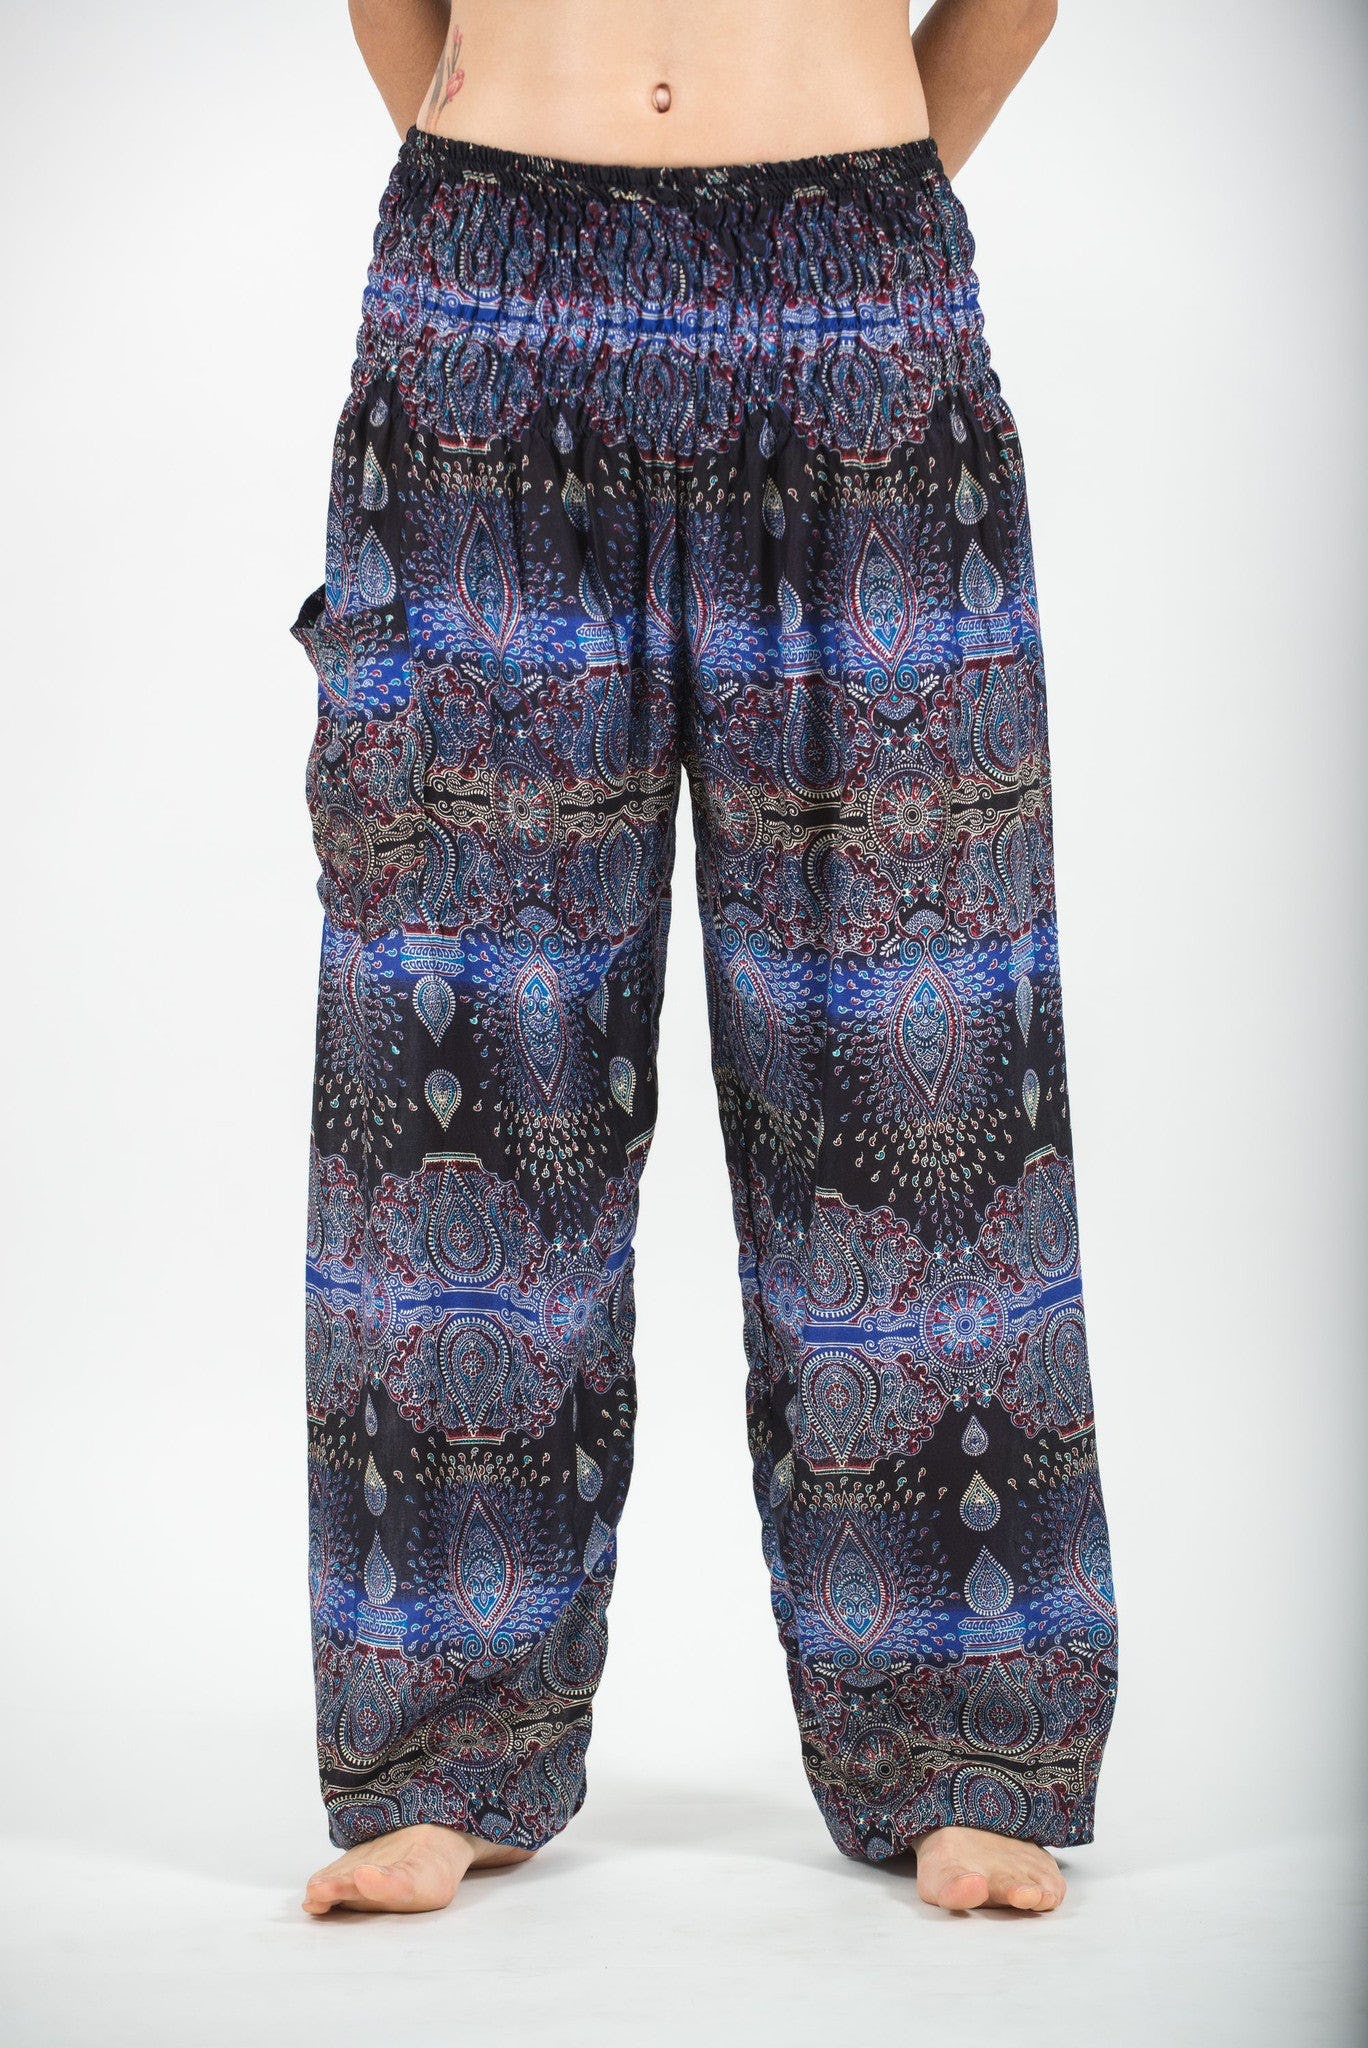 Brilliant Share Harem Pants For Women Paisley Women S Harem Pants In Turquoise